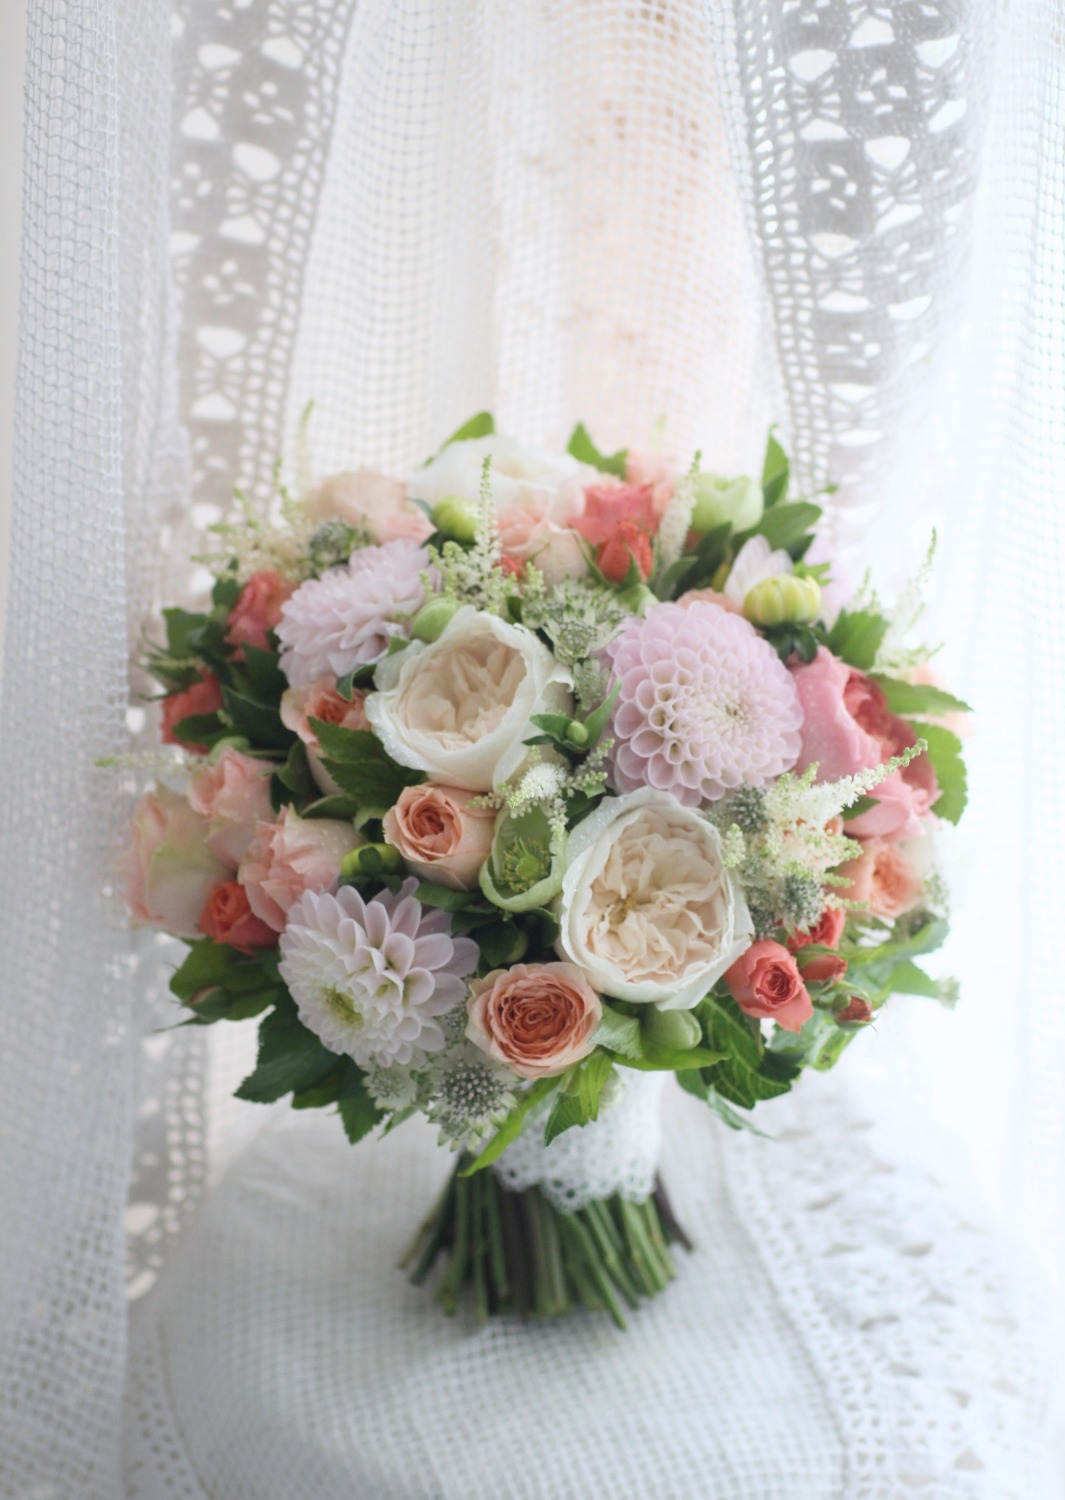 Bridal bouquet - Elégance 花球